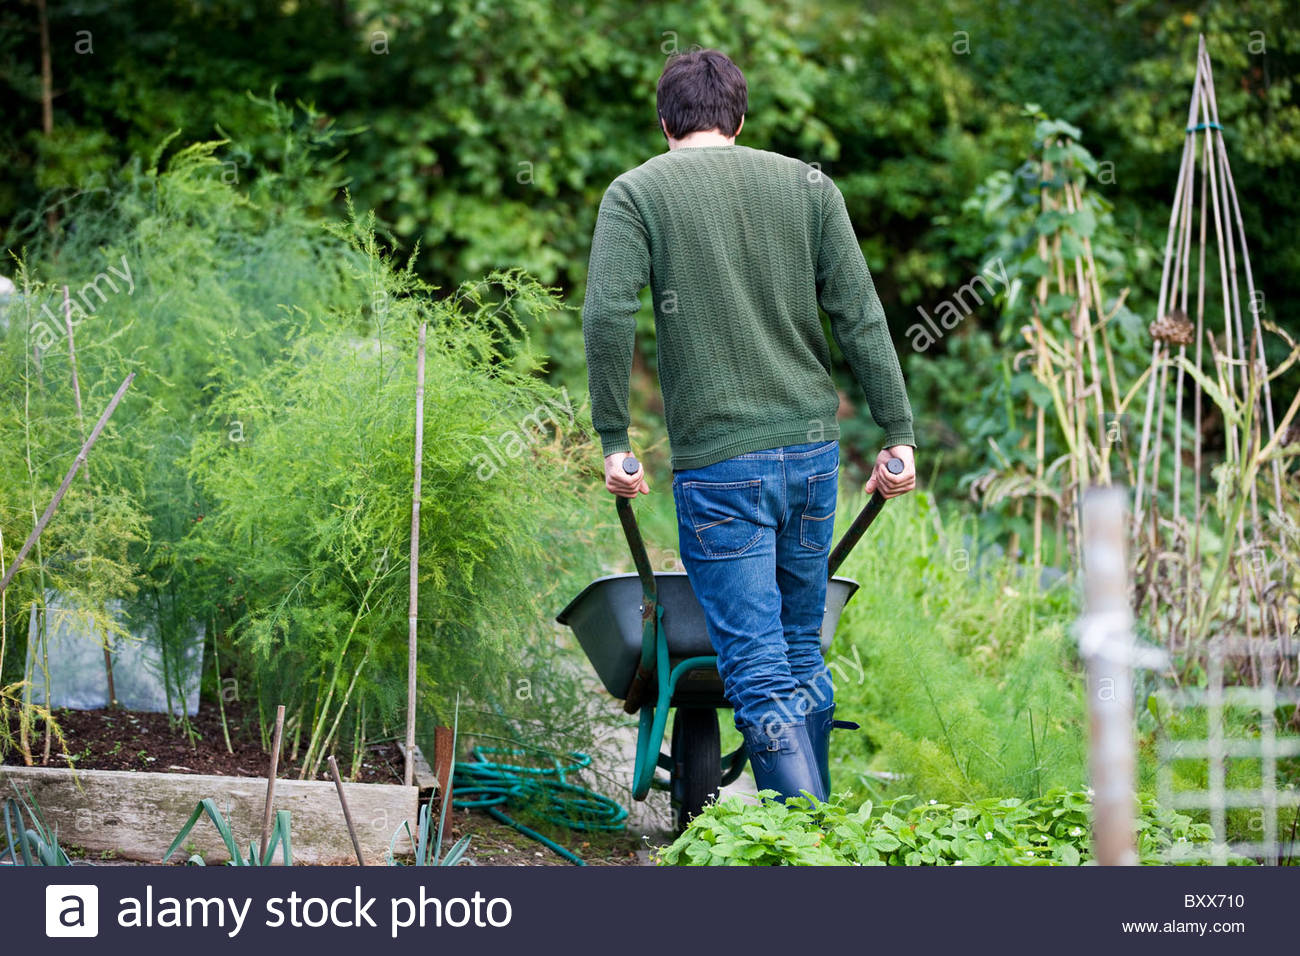 A man pushing a wheelbarrow on an allotment, rear view - Stock Image